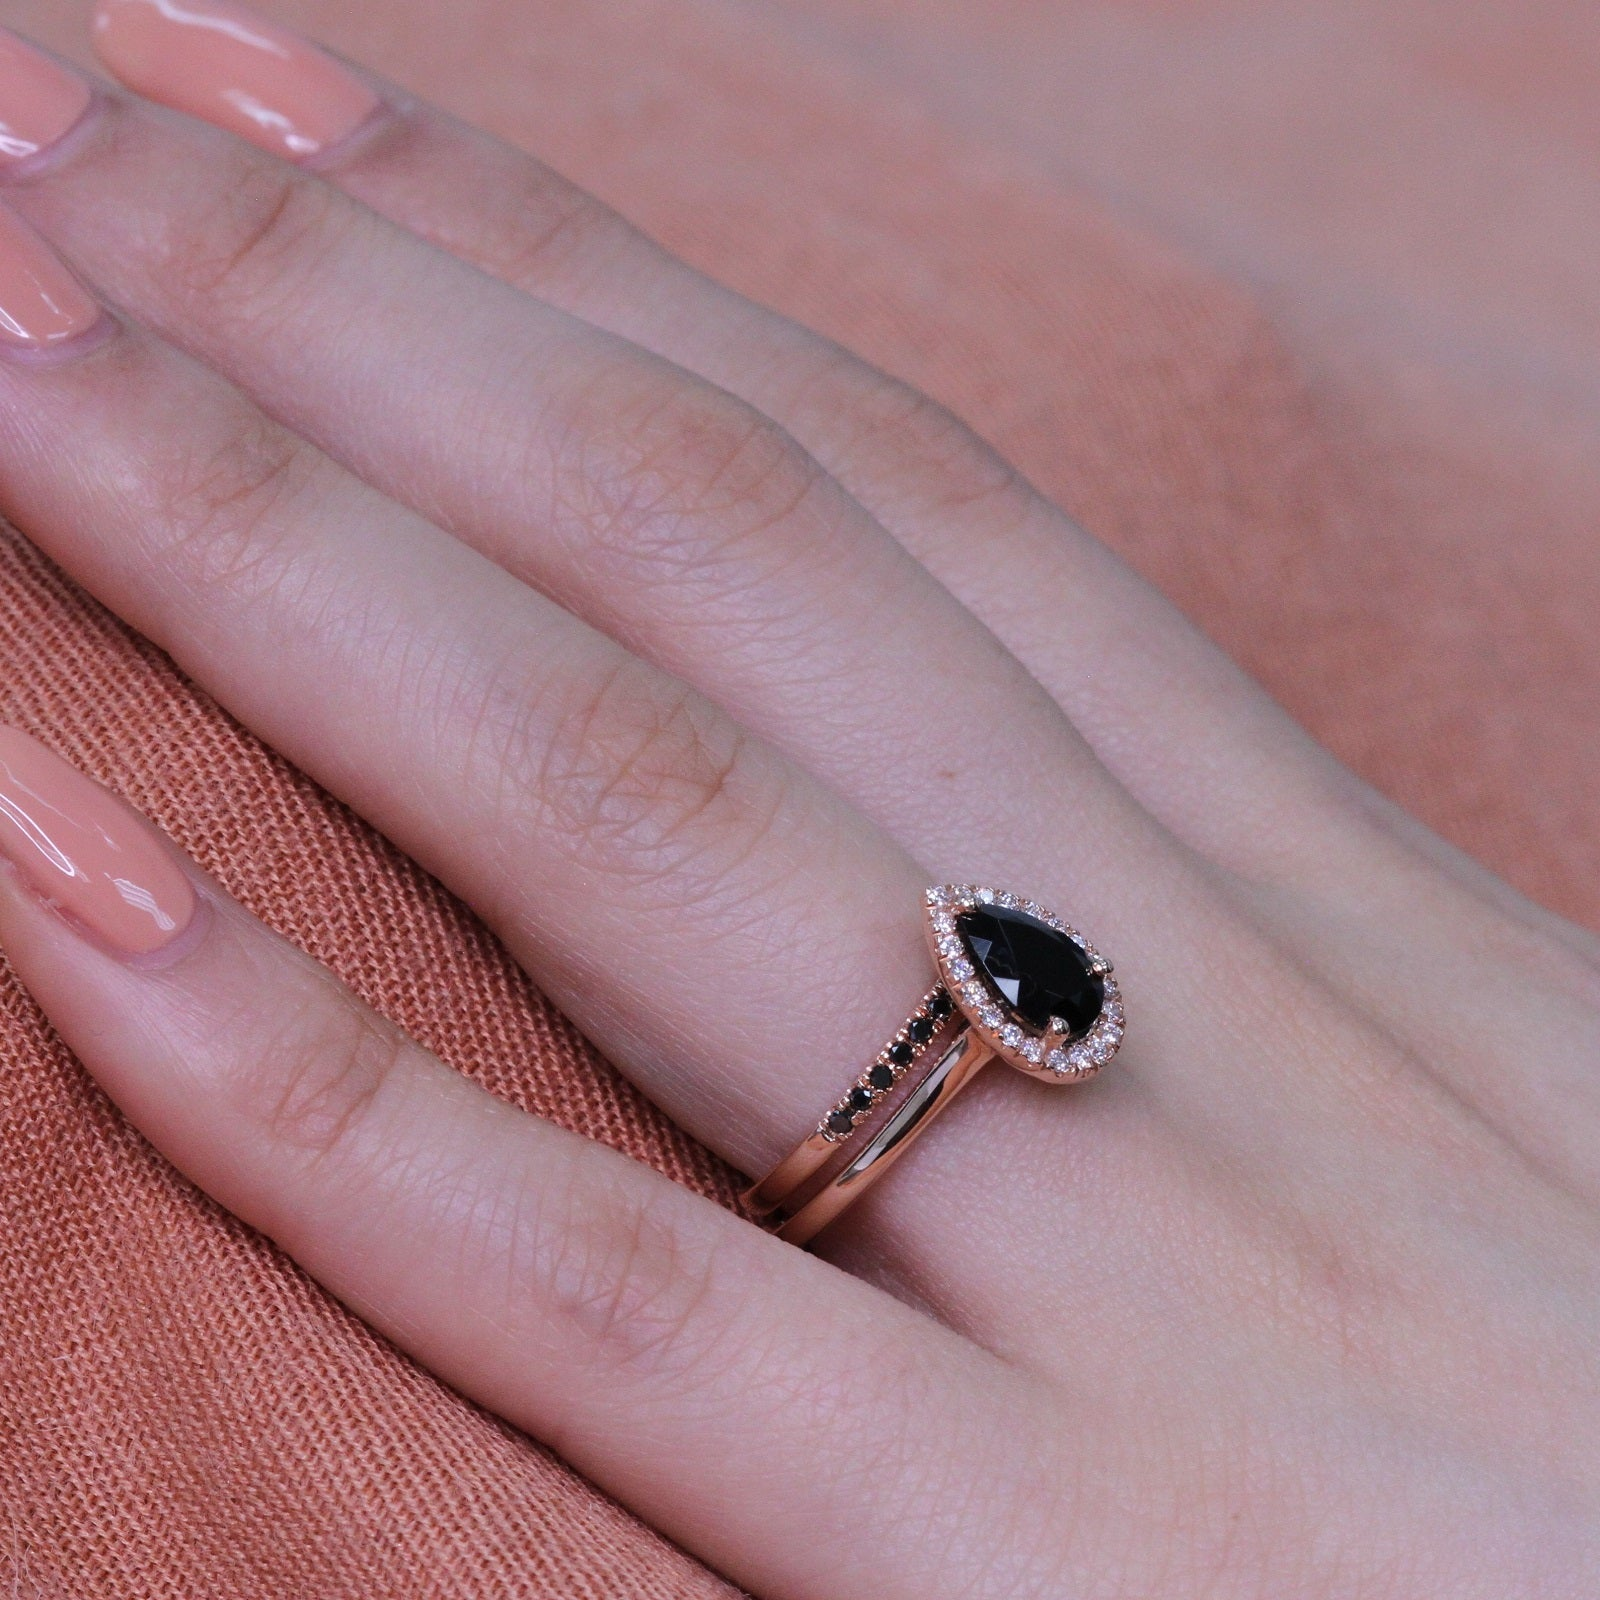 Pear Black Spinel Ring Bridal Set in Black Diamond Pave Band 9x6mm